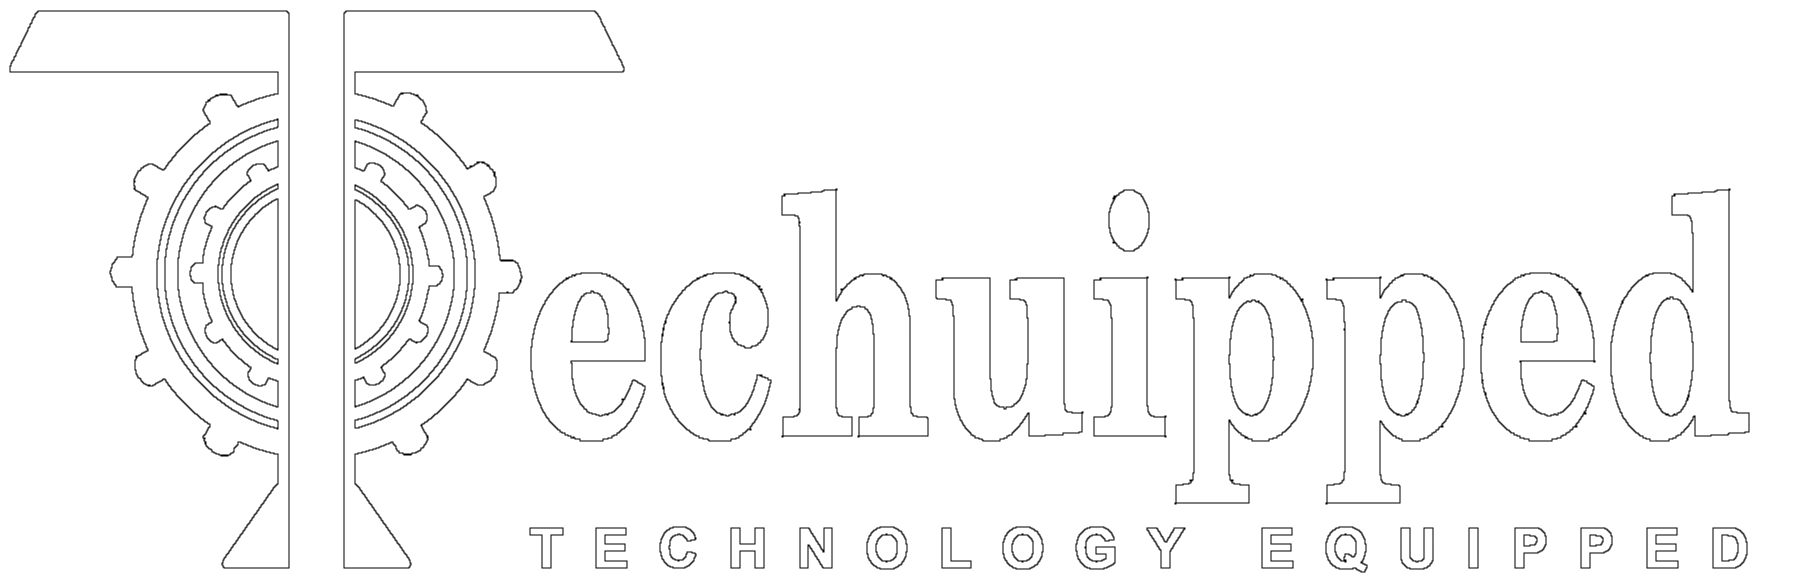 Techuipped